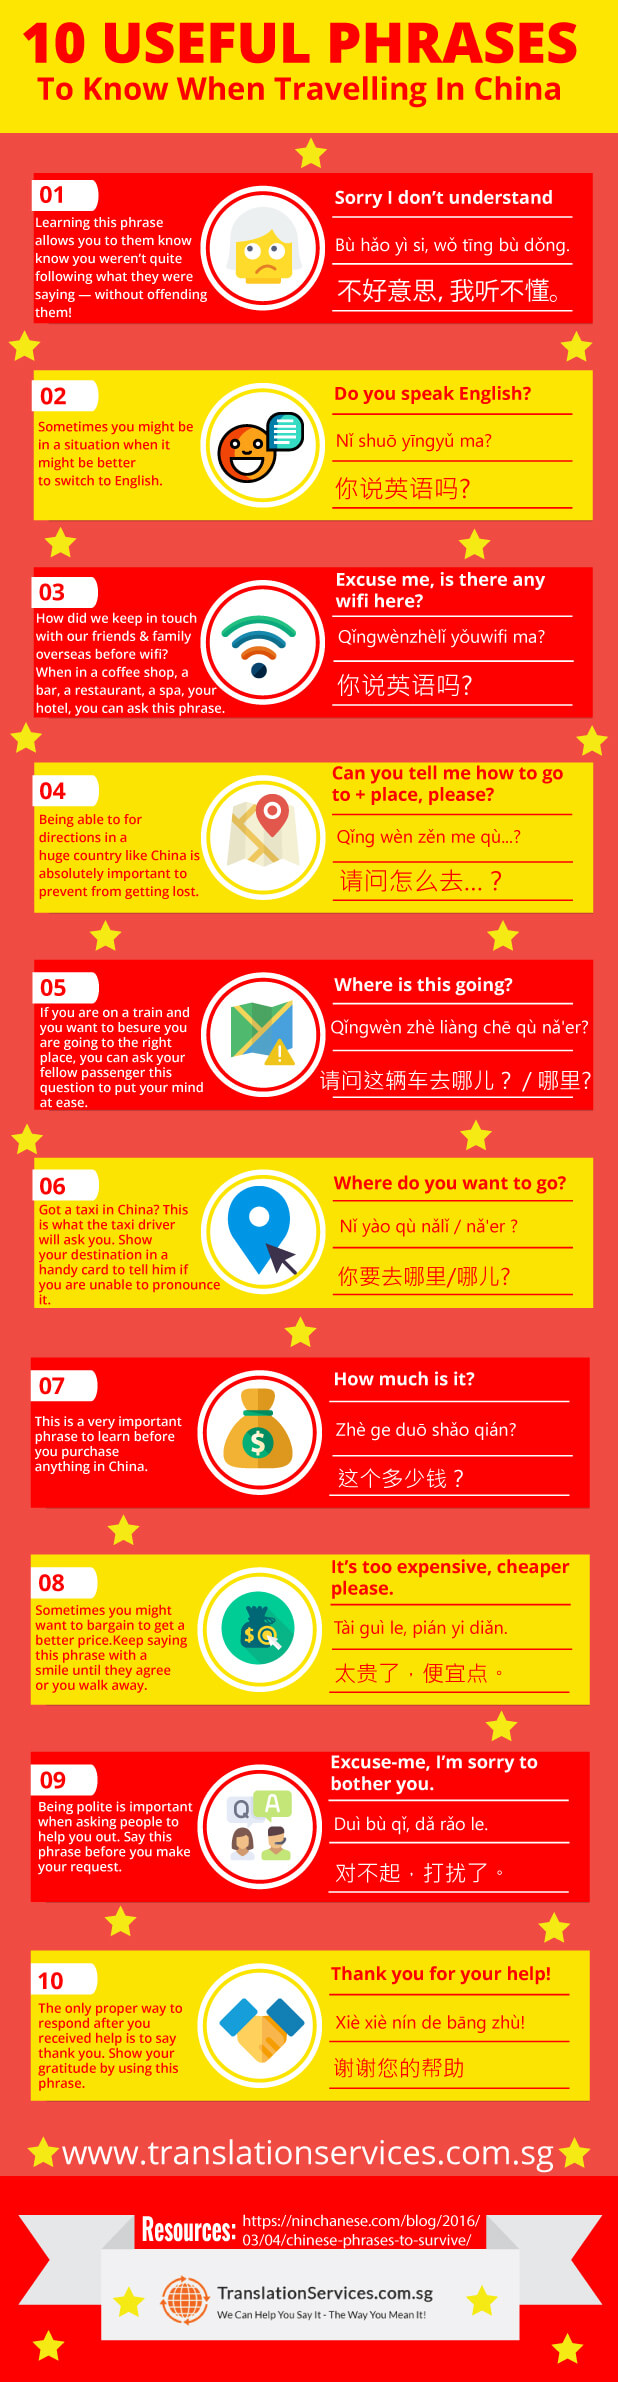 10 Useful Phrases To Know When Travelling In China